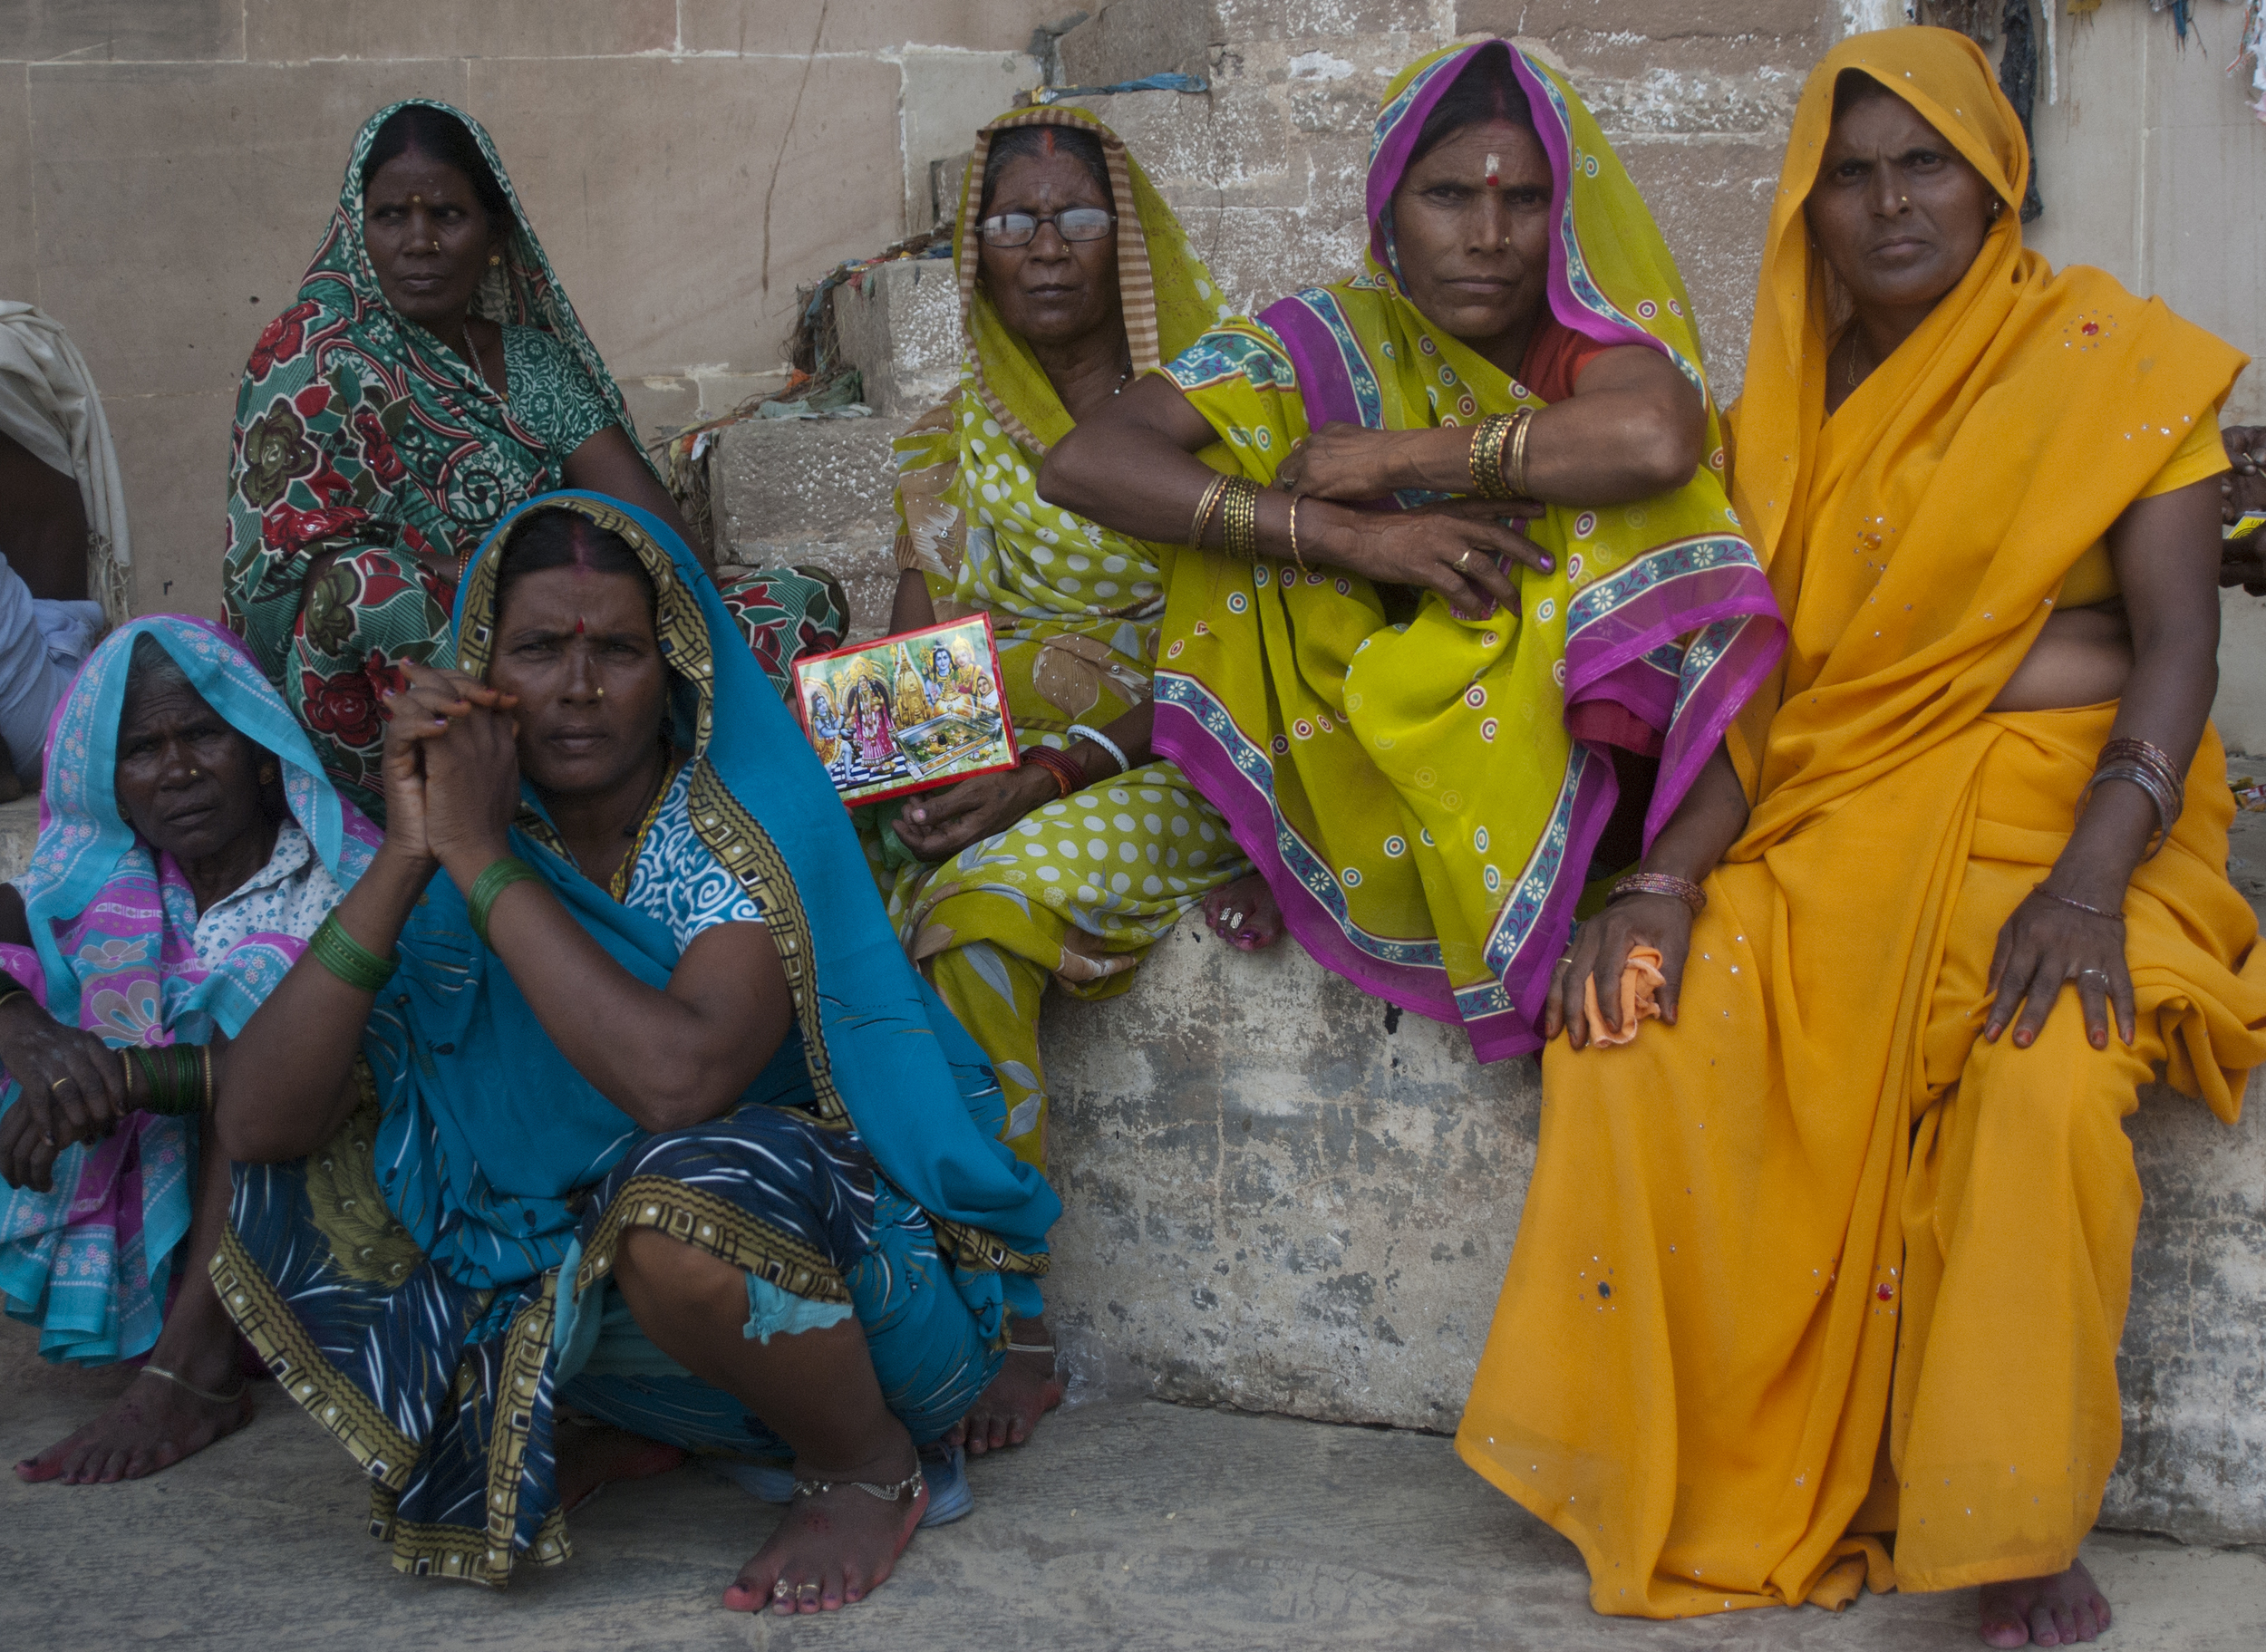 Varanasi women perch on a staircase outside of the burning ghats in Varanasi.